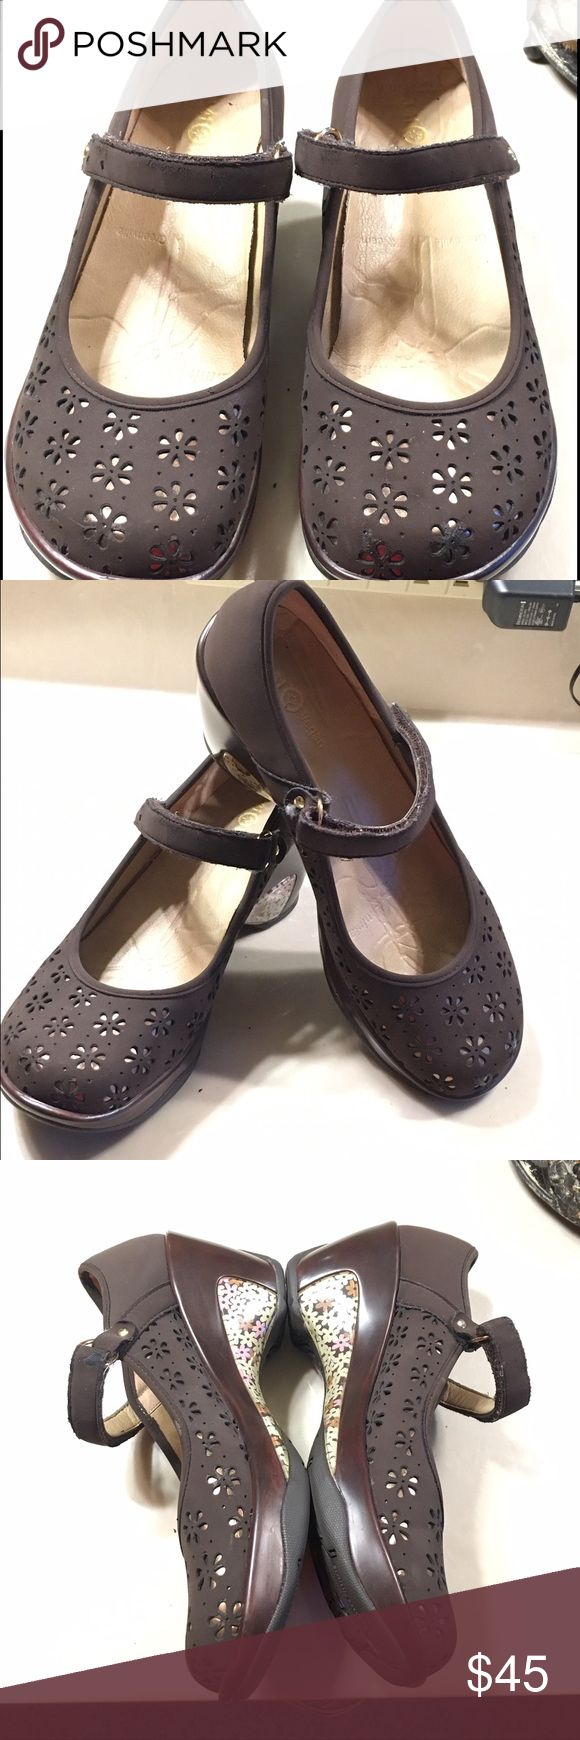 Very cute J-41 shoes Cute J-41 shoes are brown with flower cut outs. Size 8.5. (But fit like an 8) Worn only a couple times. Excellent condition! J-41 Shoes Mules & Clogs